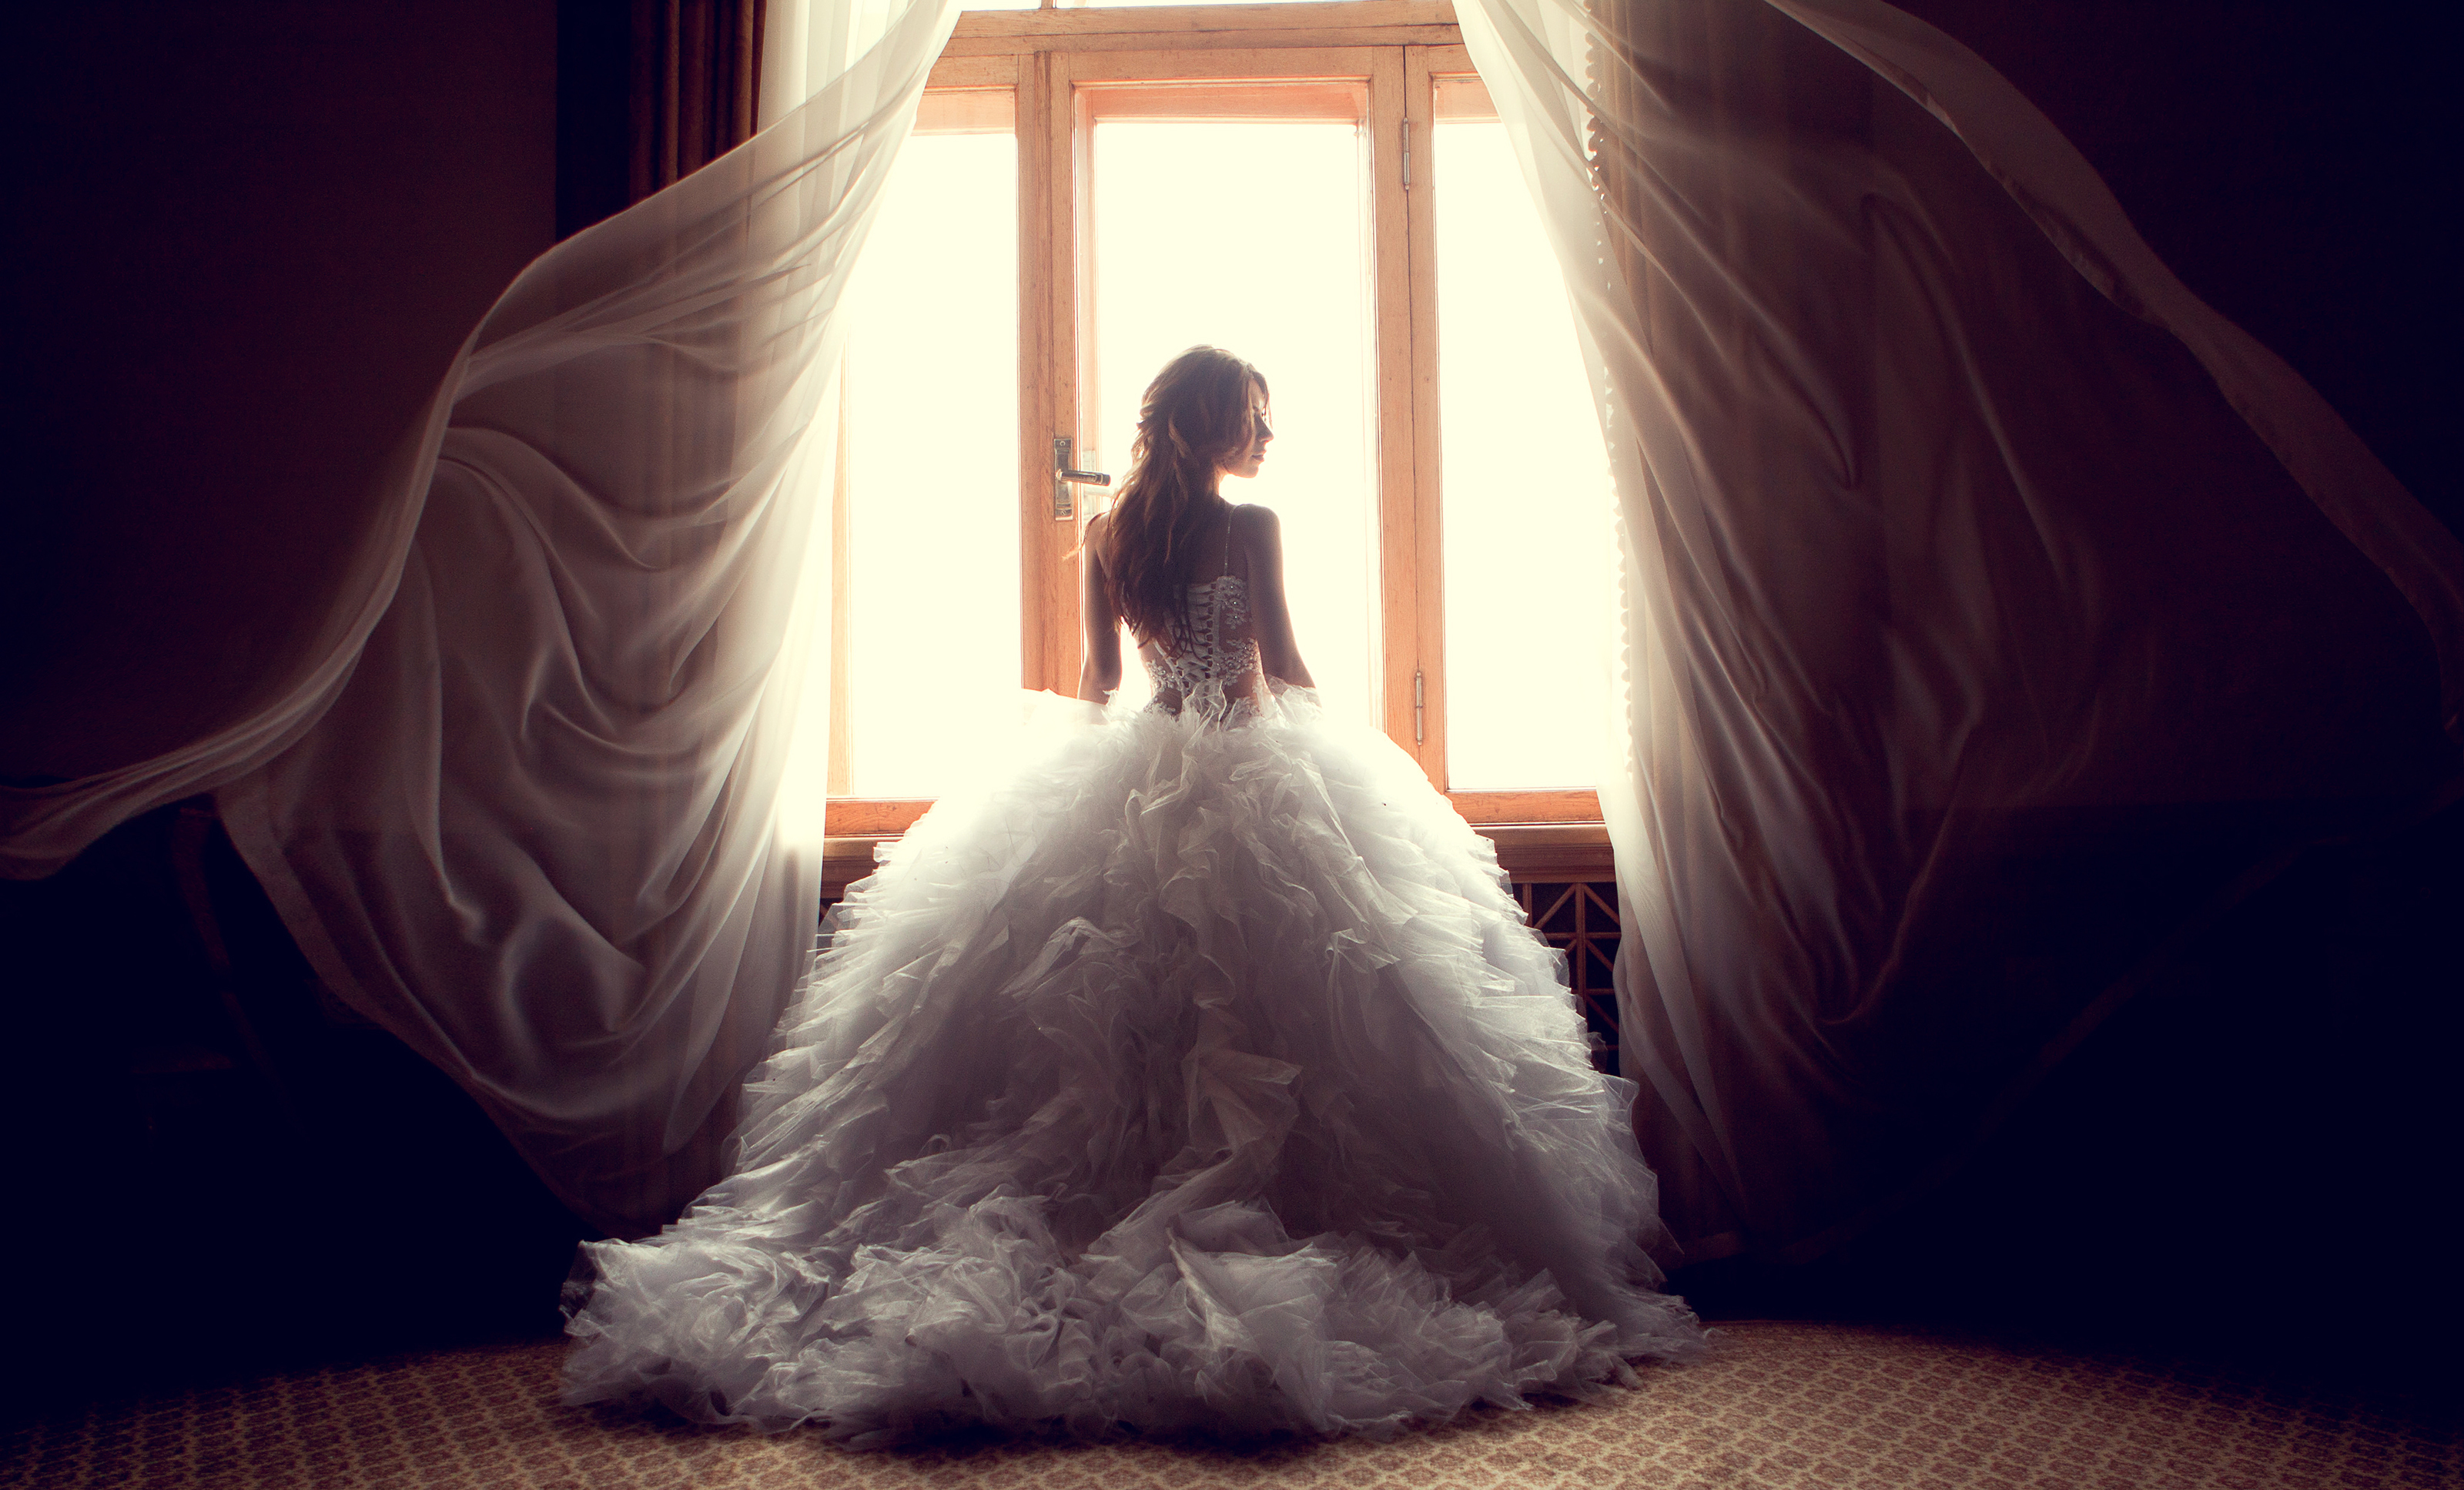 Portrait of the beautiful bride against a window indoors